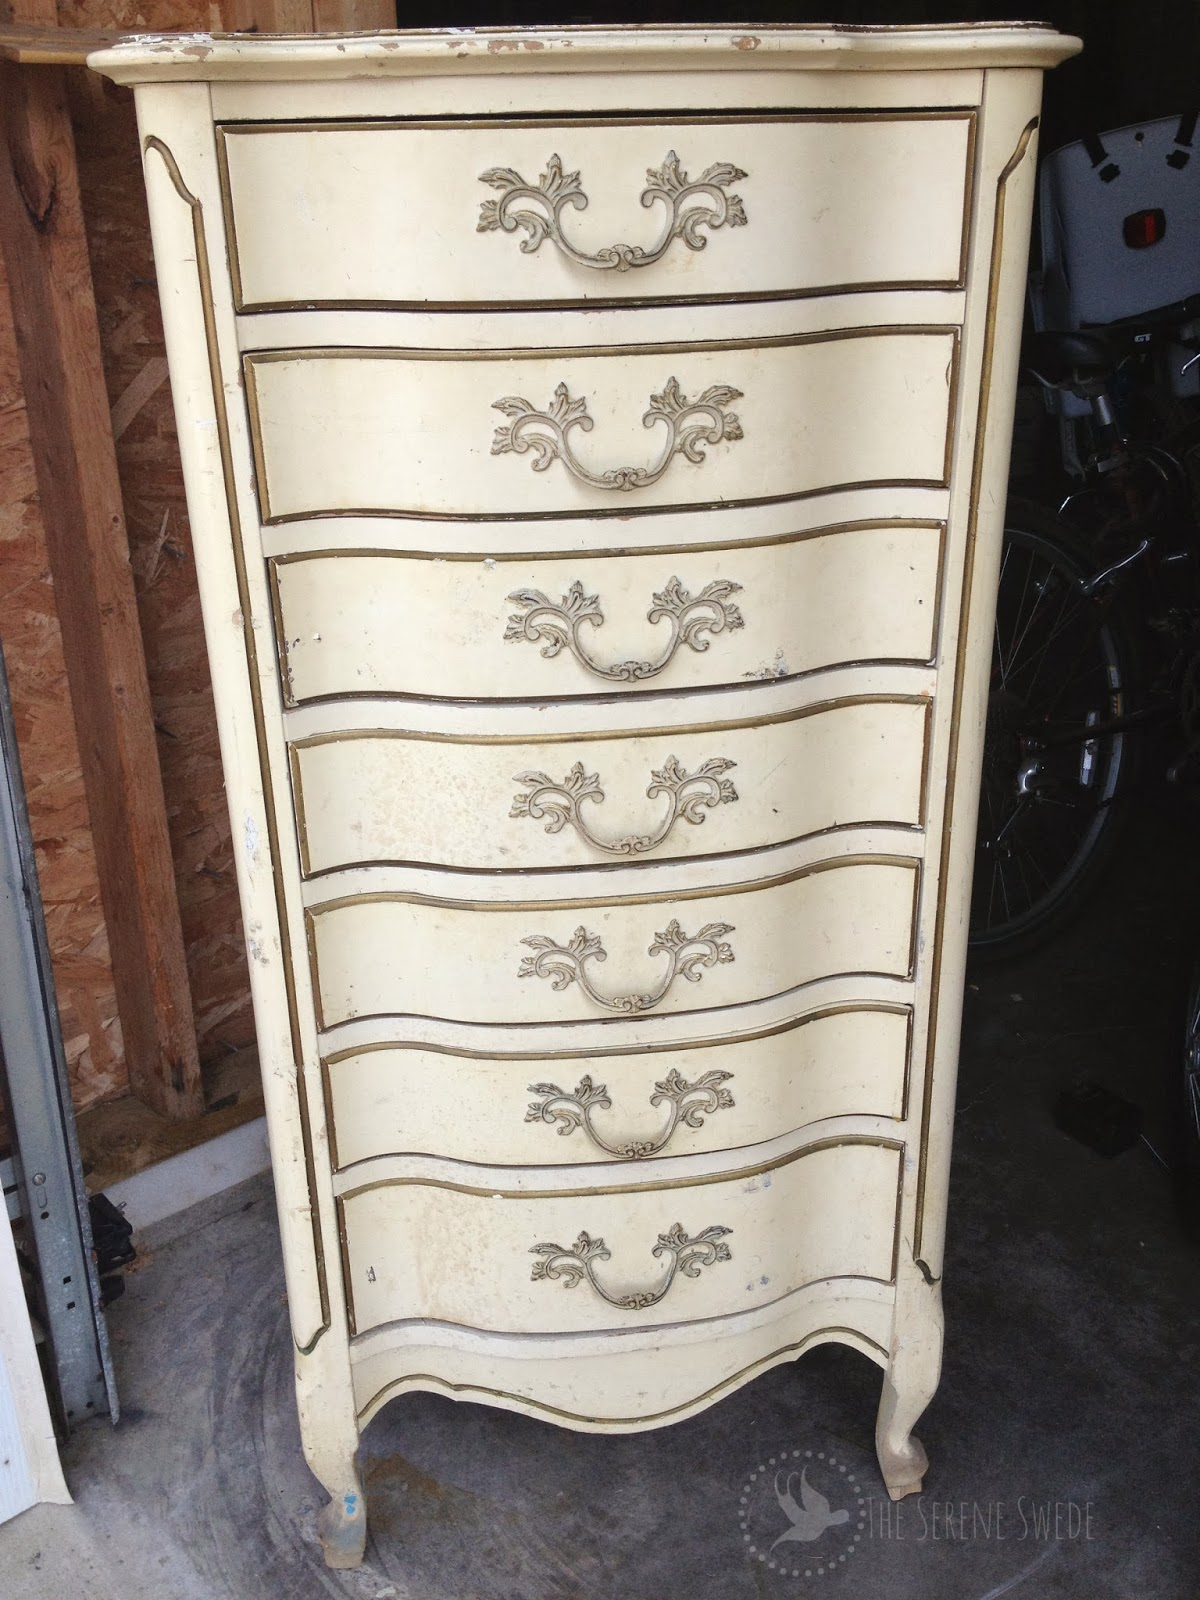 The Serene Swede French Provincial Dresser Fake It Till You Make It